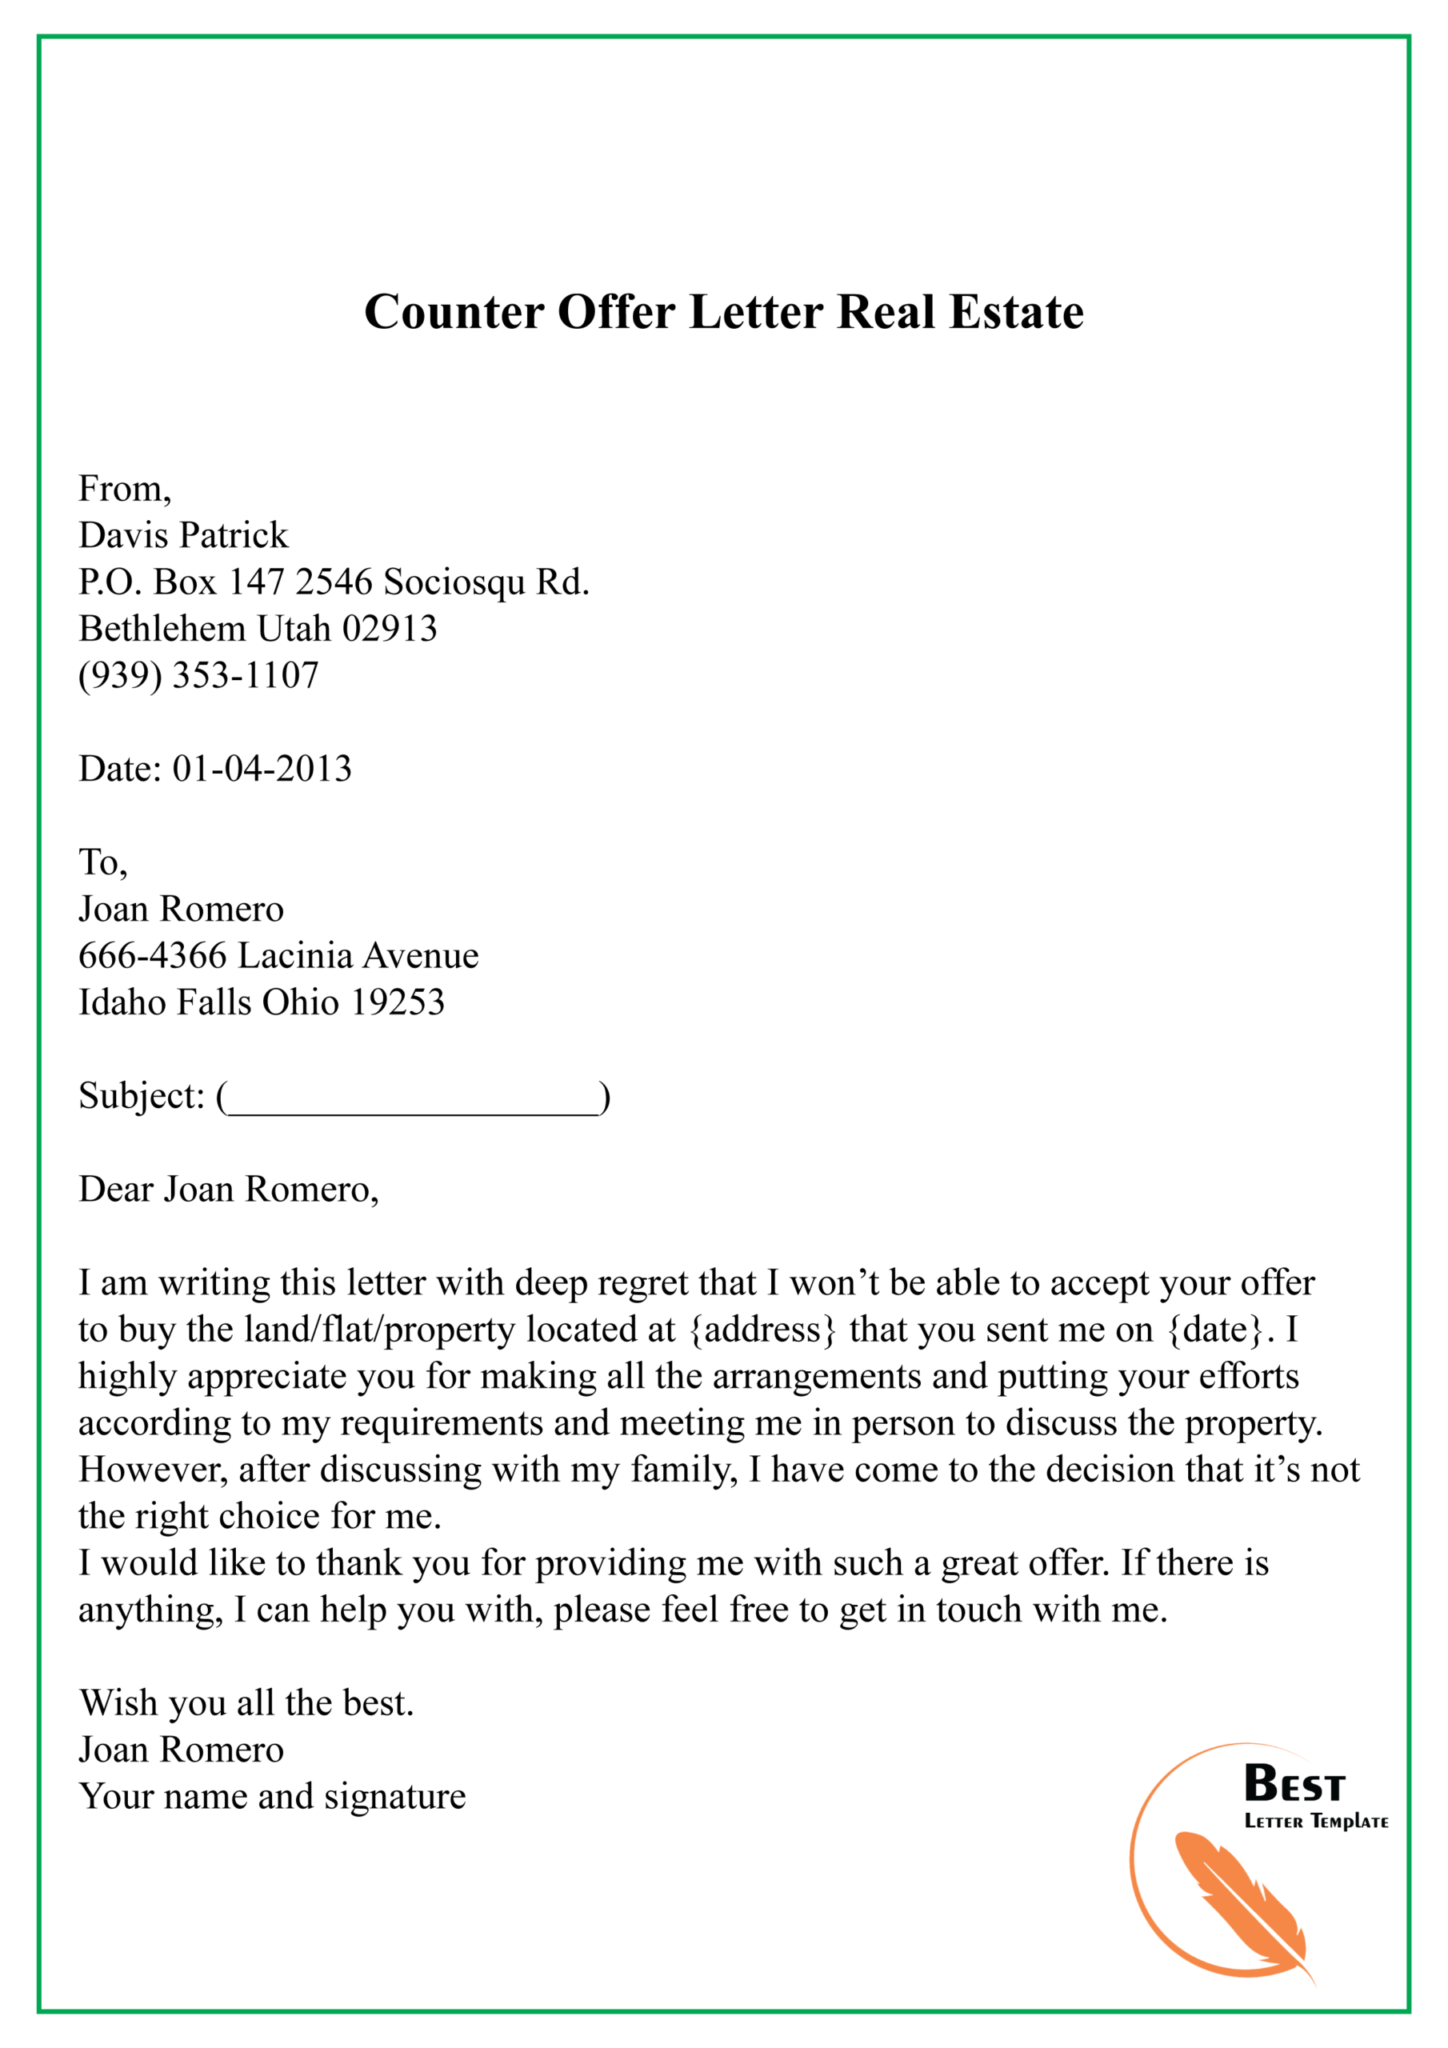 Counter Offer Letter Real Estate 01 Best Letter Template For Real Estate Offer Letter Template Letter Templates Letter Template Word Proposal Letter